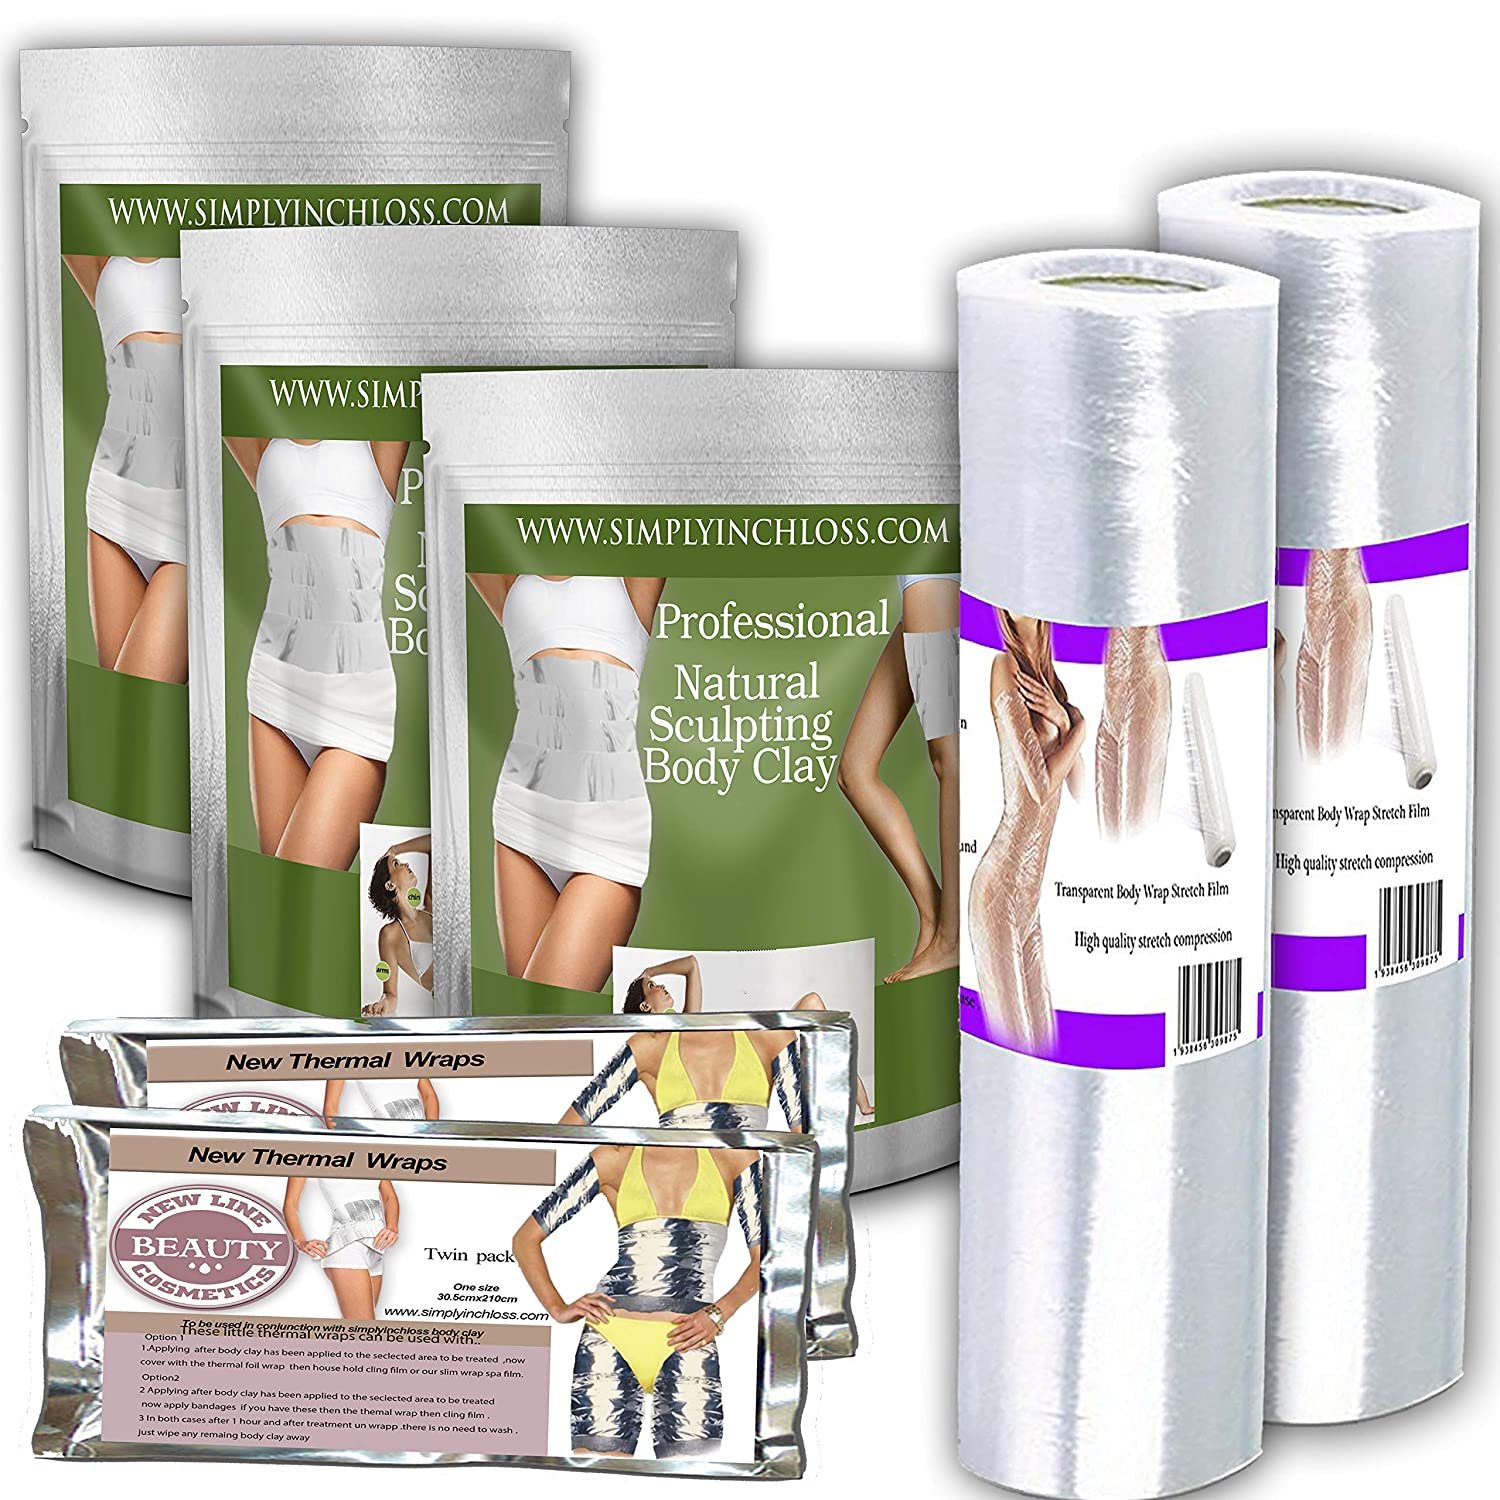 2 spa films 3 cosmetic body clay wrap pack 4 thermal sauna foil wraps home spa kit divineclay c-4567